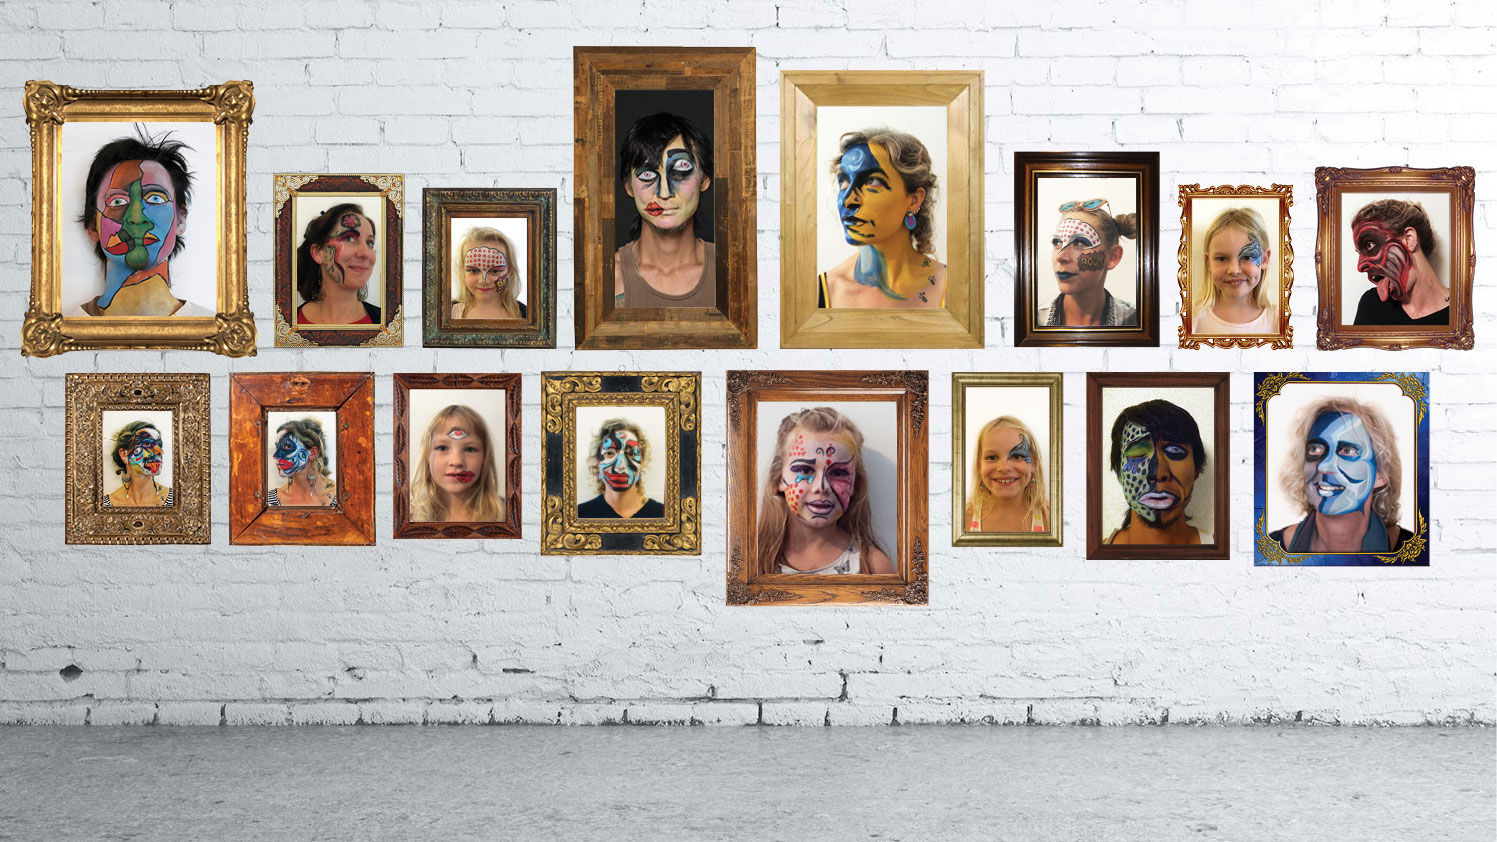 Face painted portraits in frames